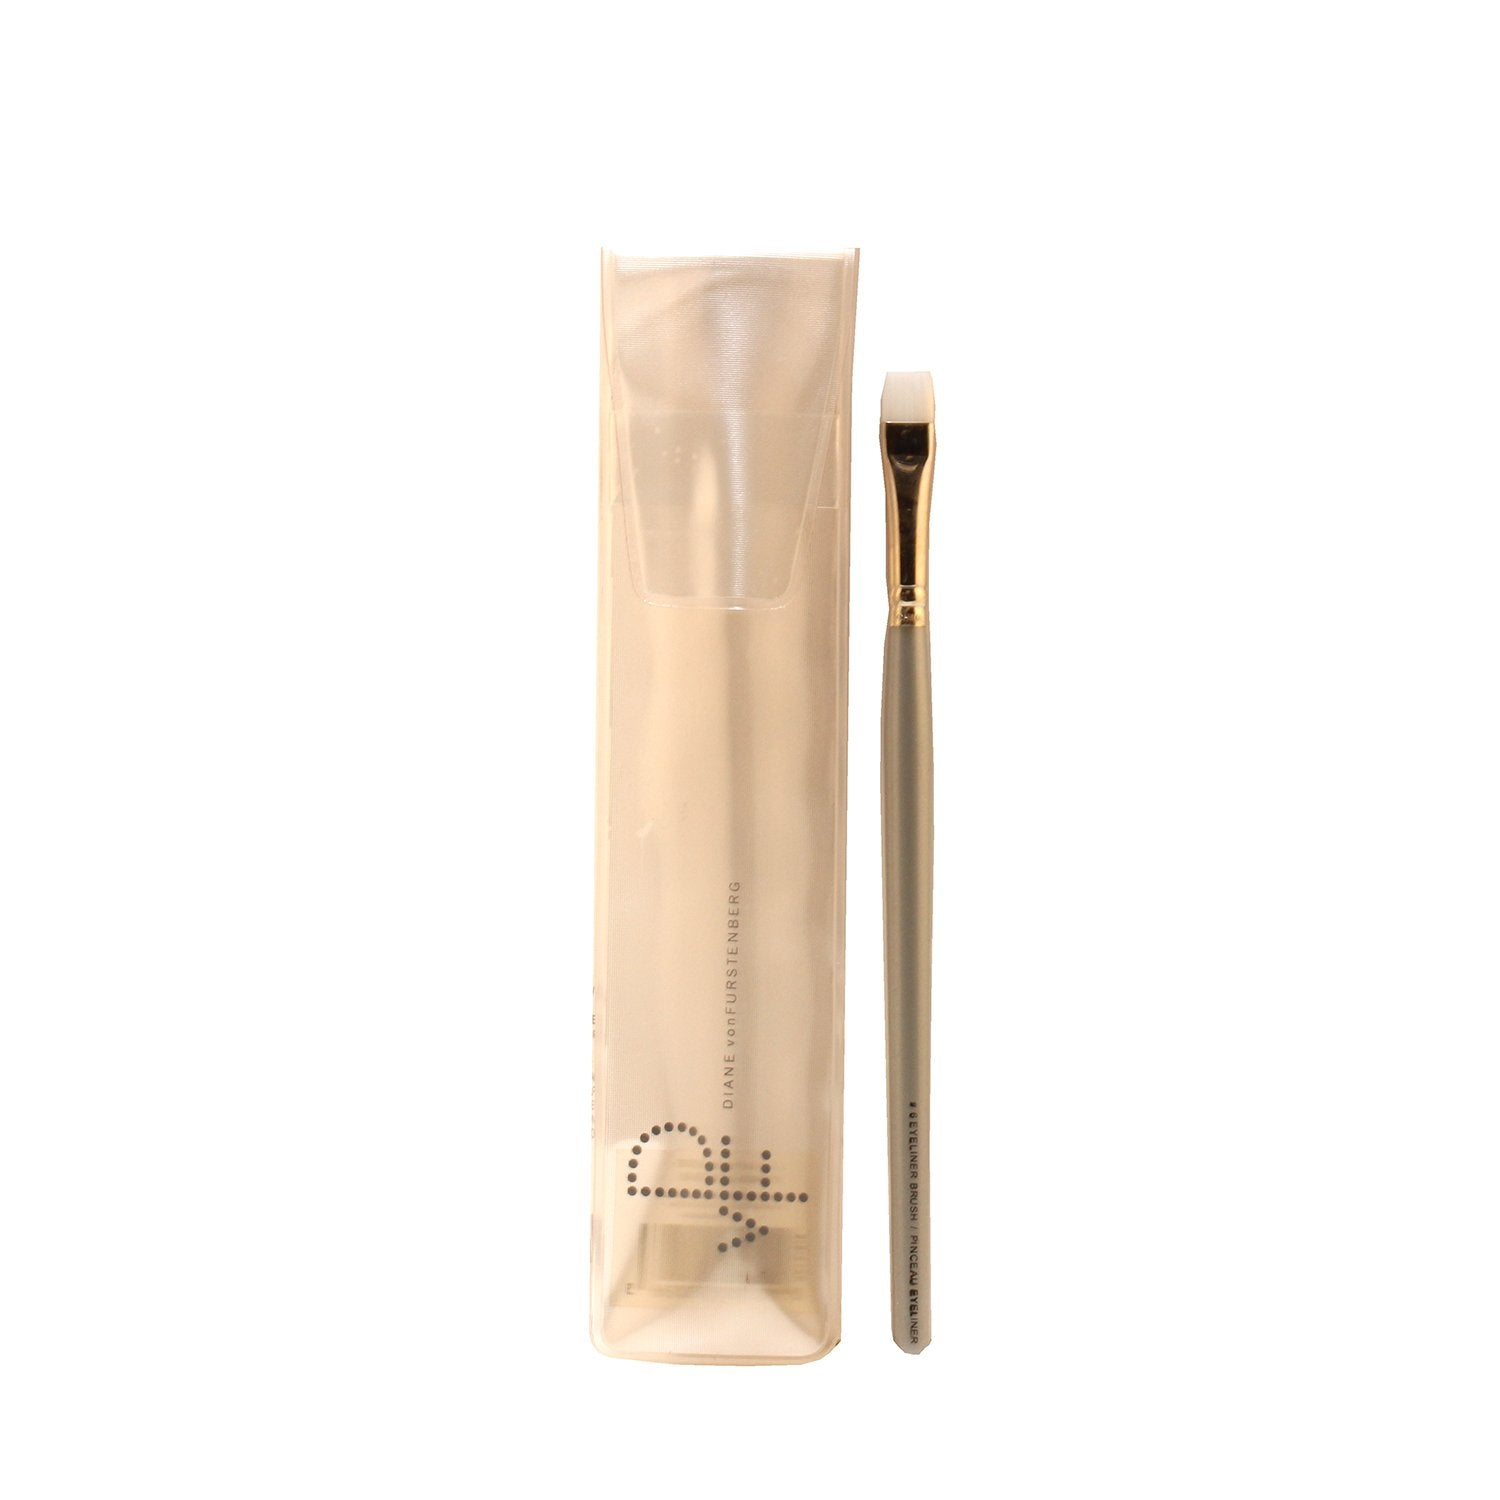 Accessories - DIANE VON FURSTENBERG COSMETIC EYE CONTOUR BRUSH